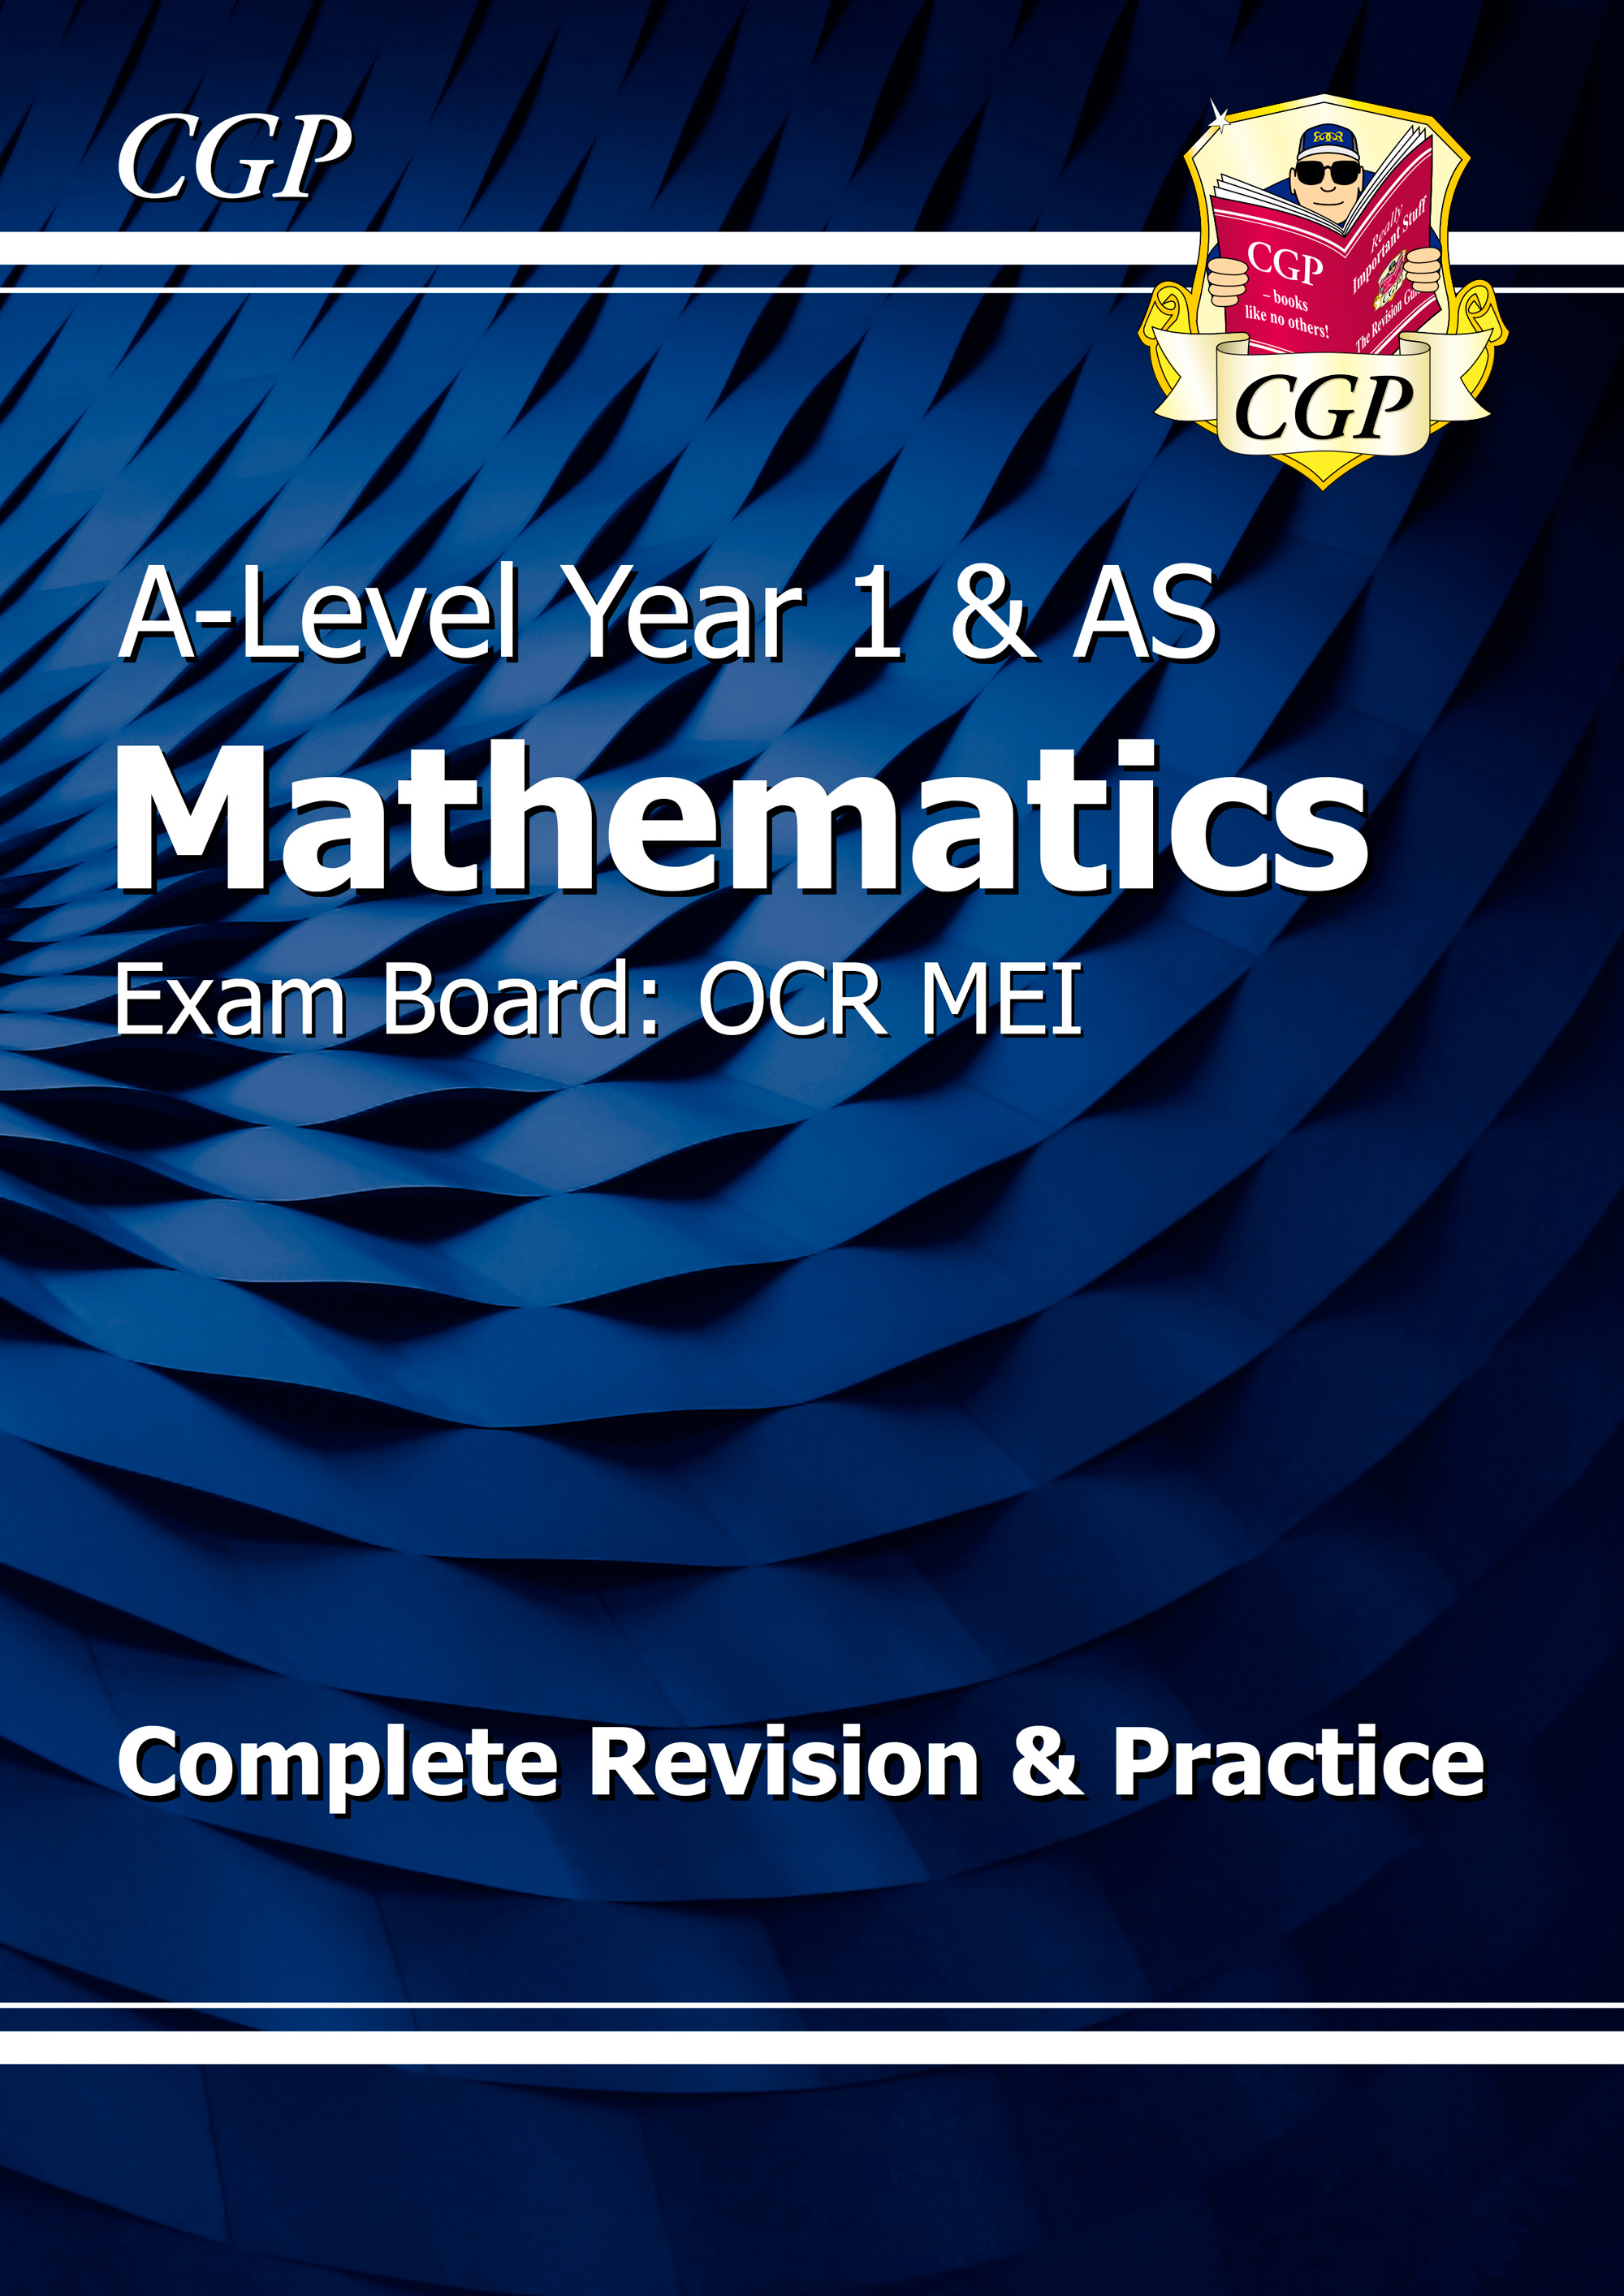 MRMR52DK - New A-Level Maths for OCR MEI: Year 1 & AS Complete Revision & Practice